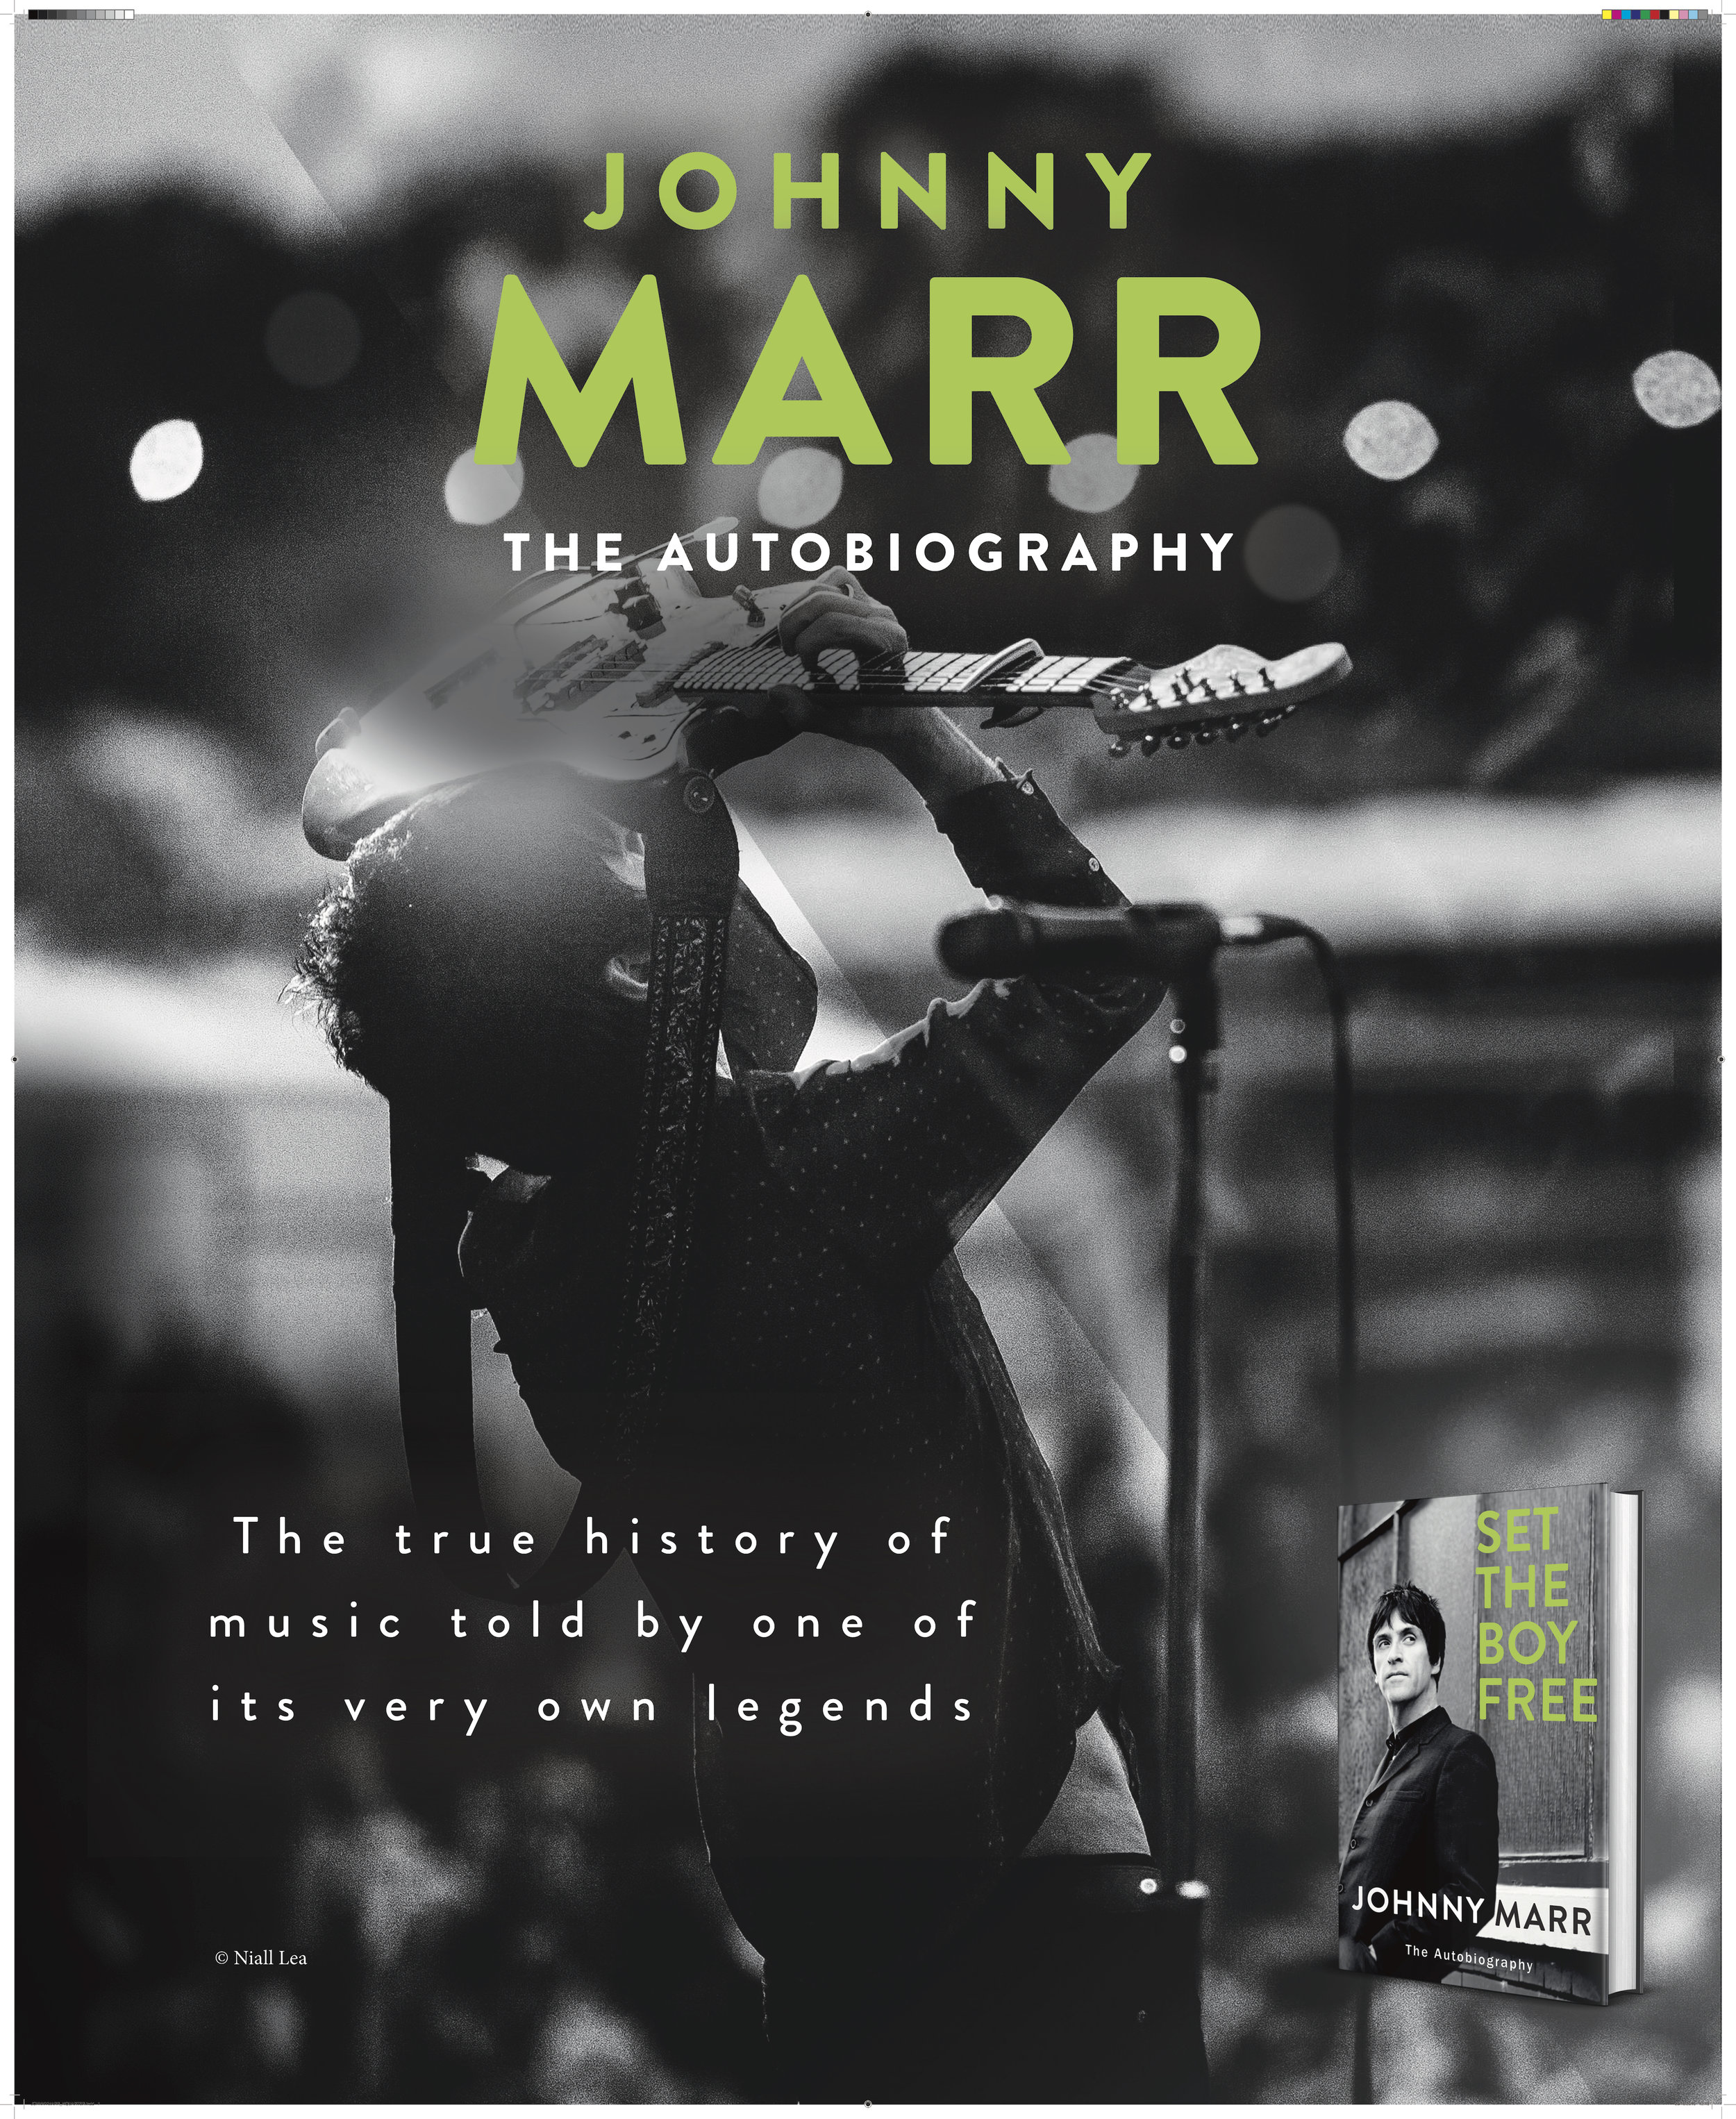 Johnny Marr Autobiography Poster.jpg